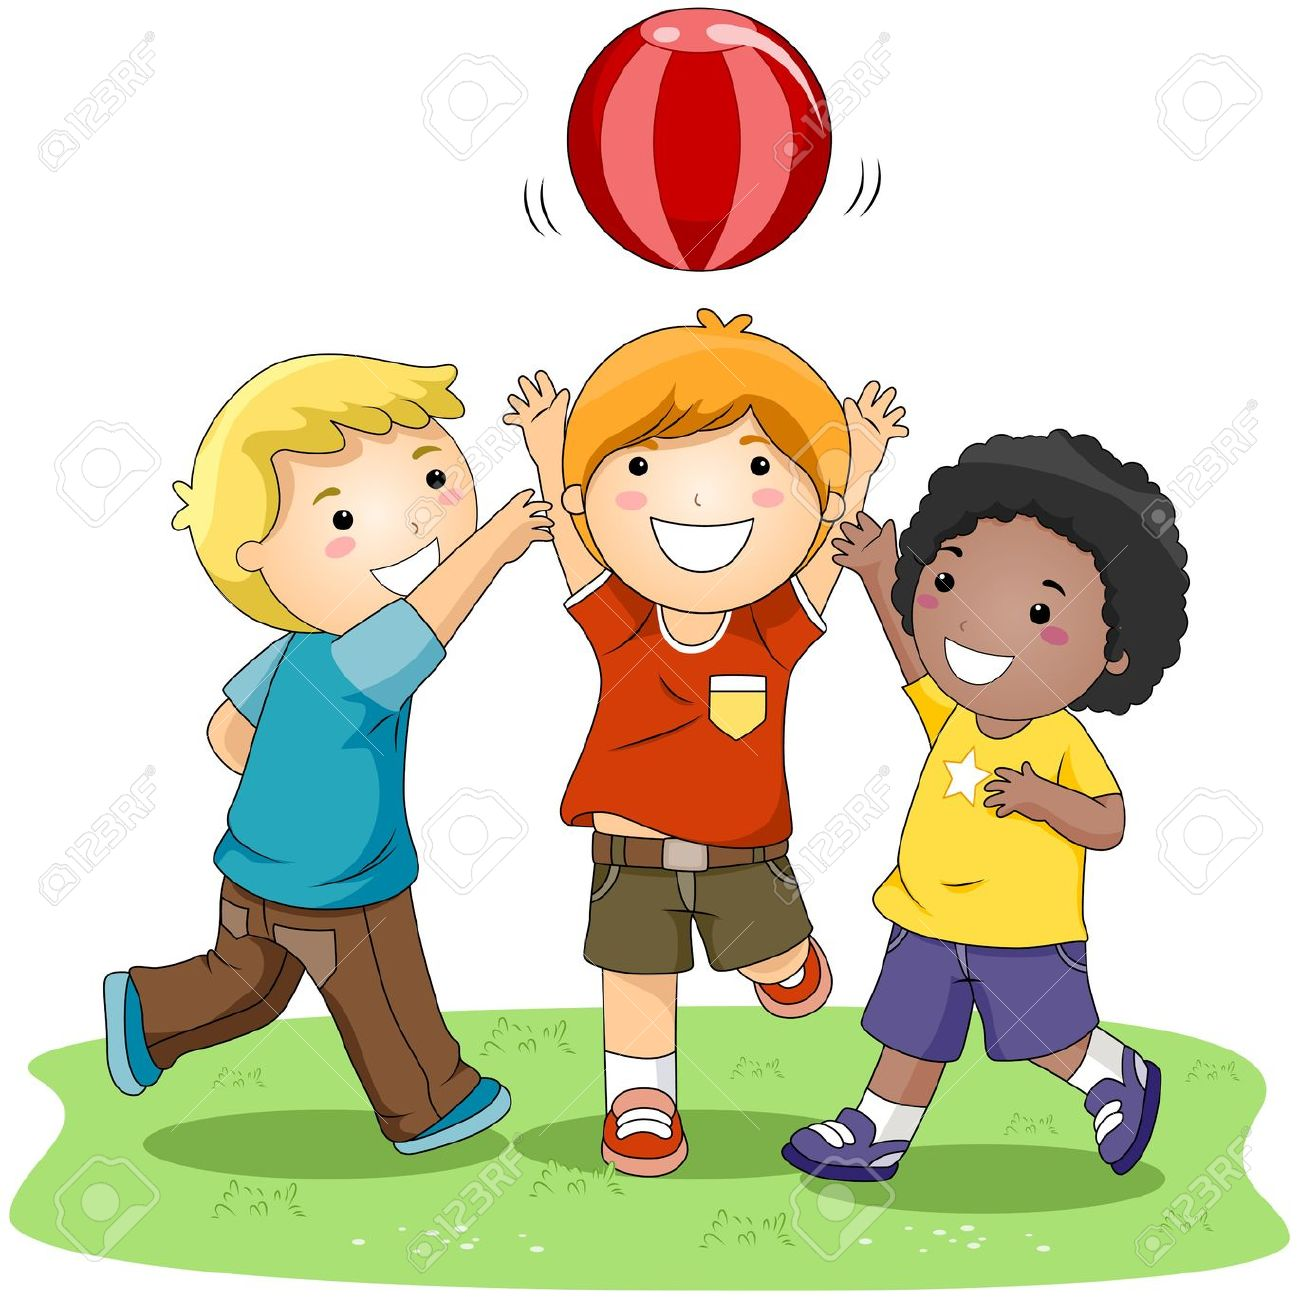 Clip art children playing.